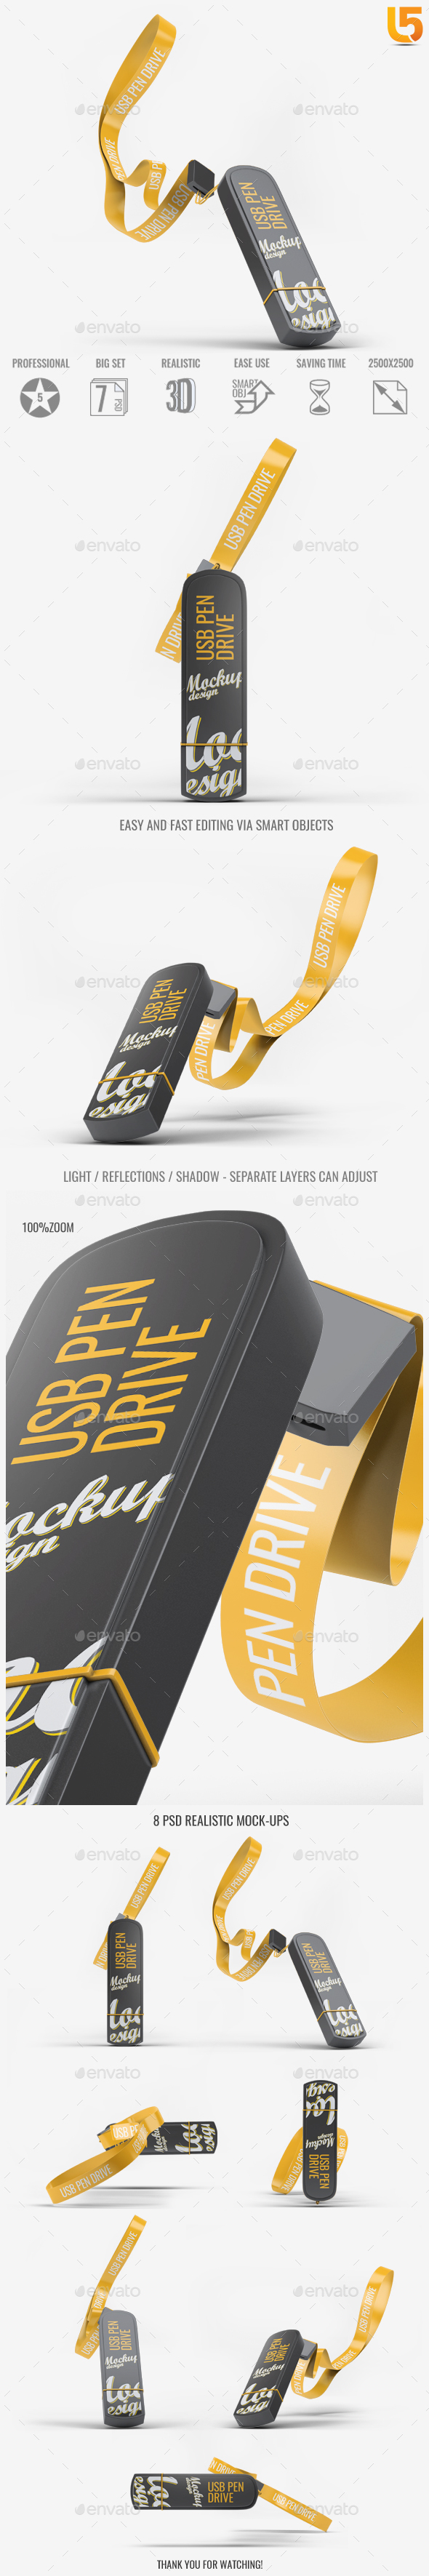 USB Pen Drive Mock-Up - Miscellaneous Product Mock-Ups